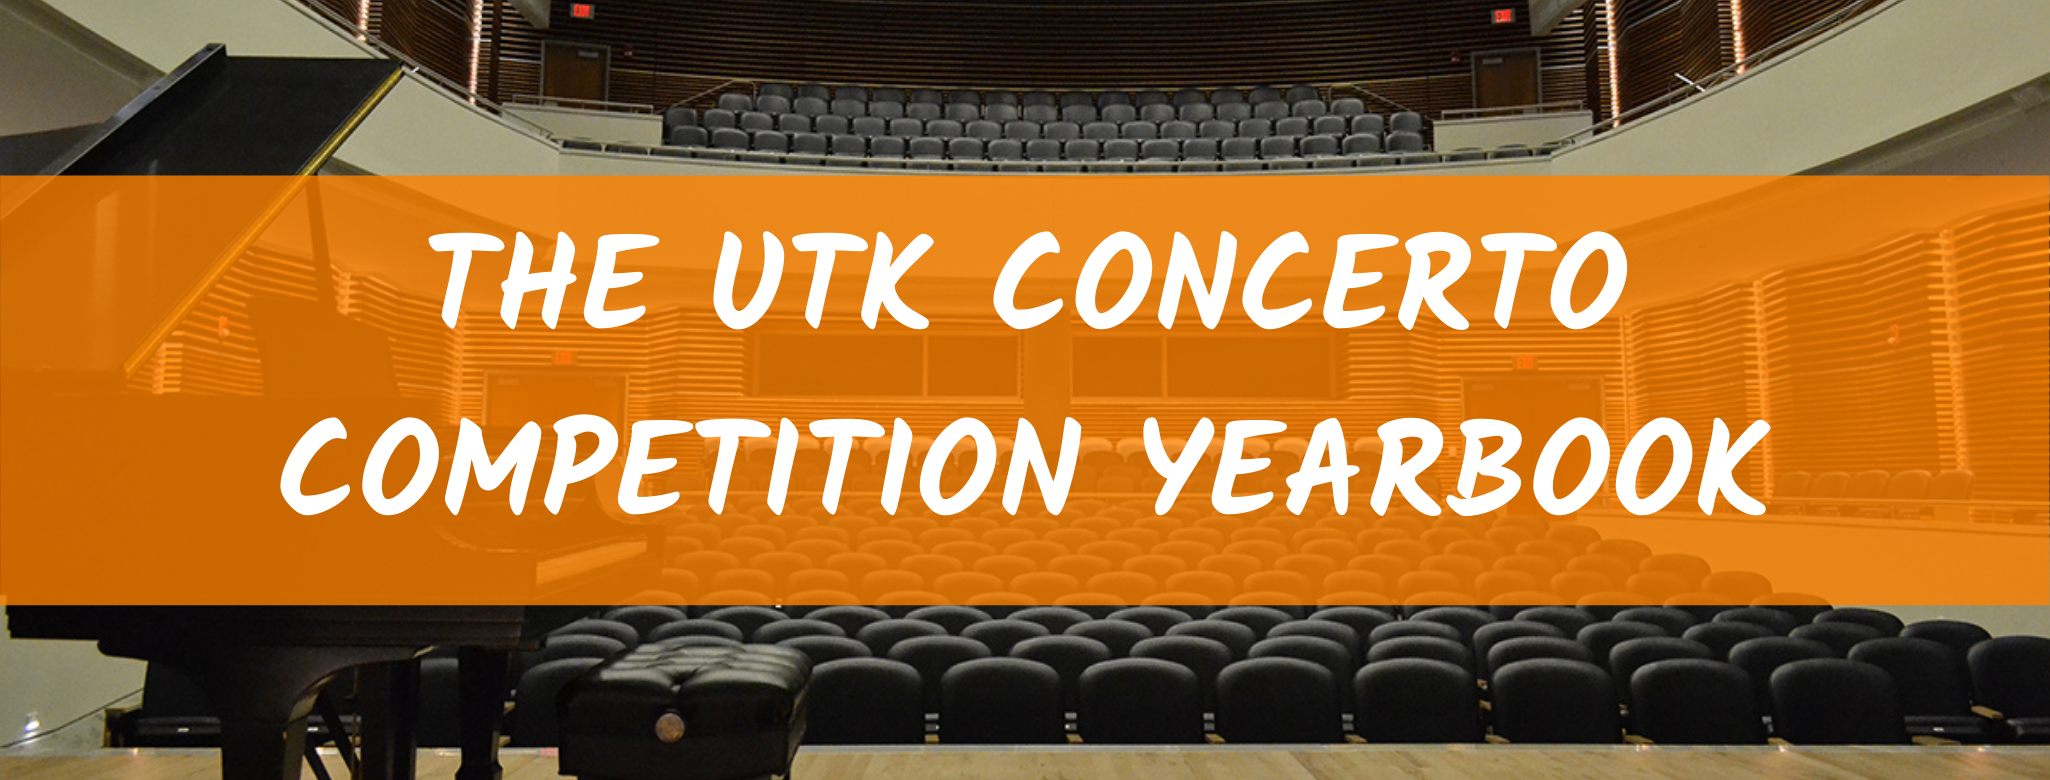 UTK Concerto Competition Yearbook Banner Art